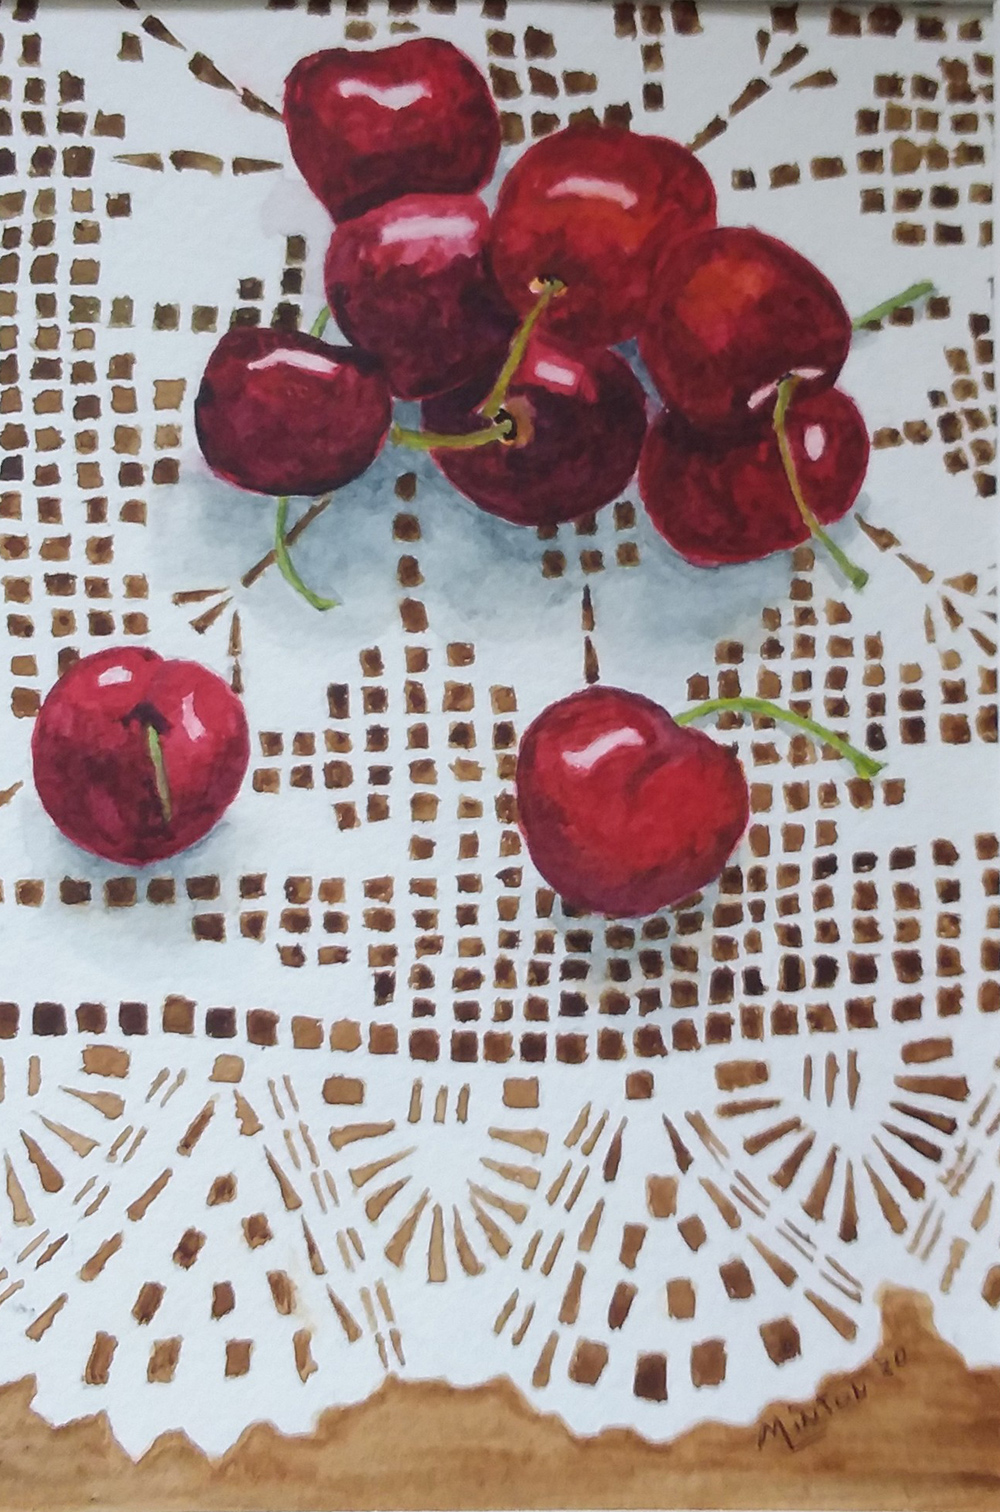 Marlene Linton 9 Cherries